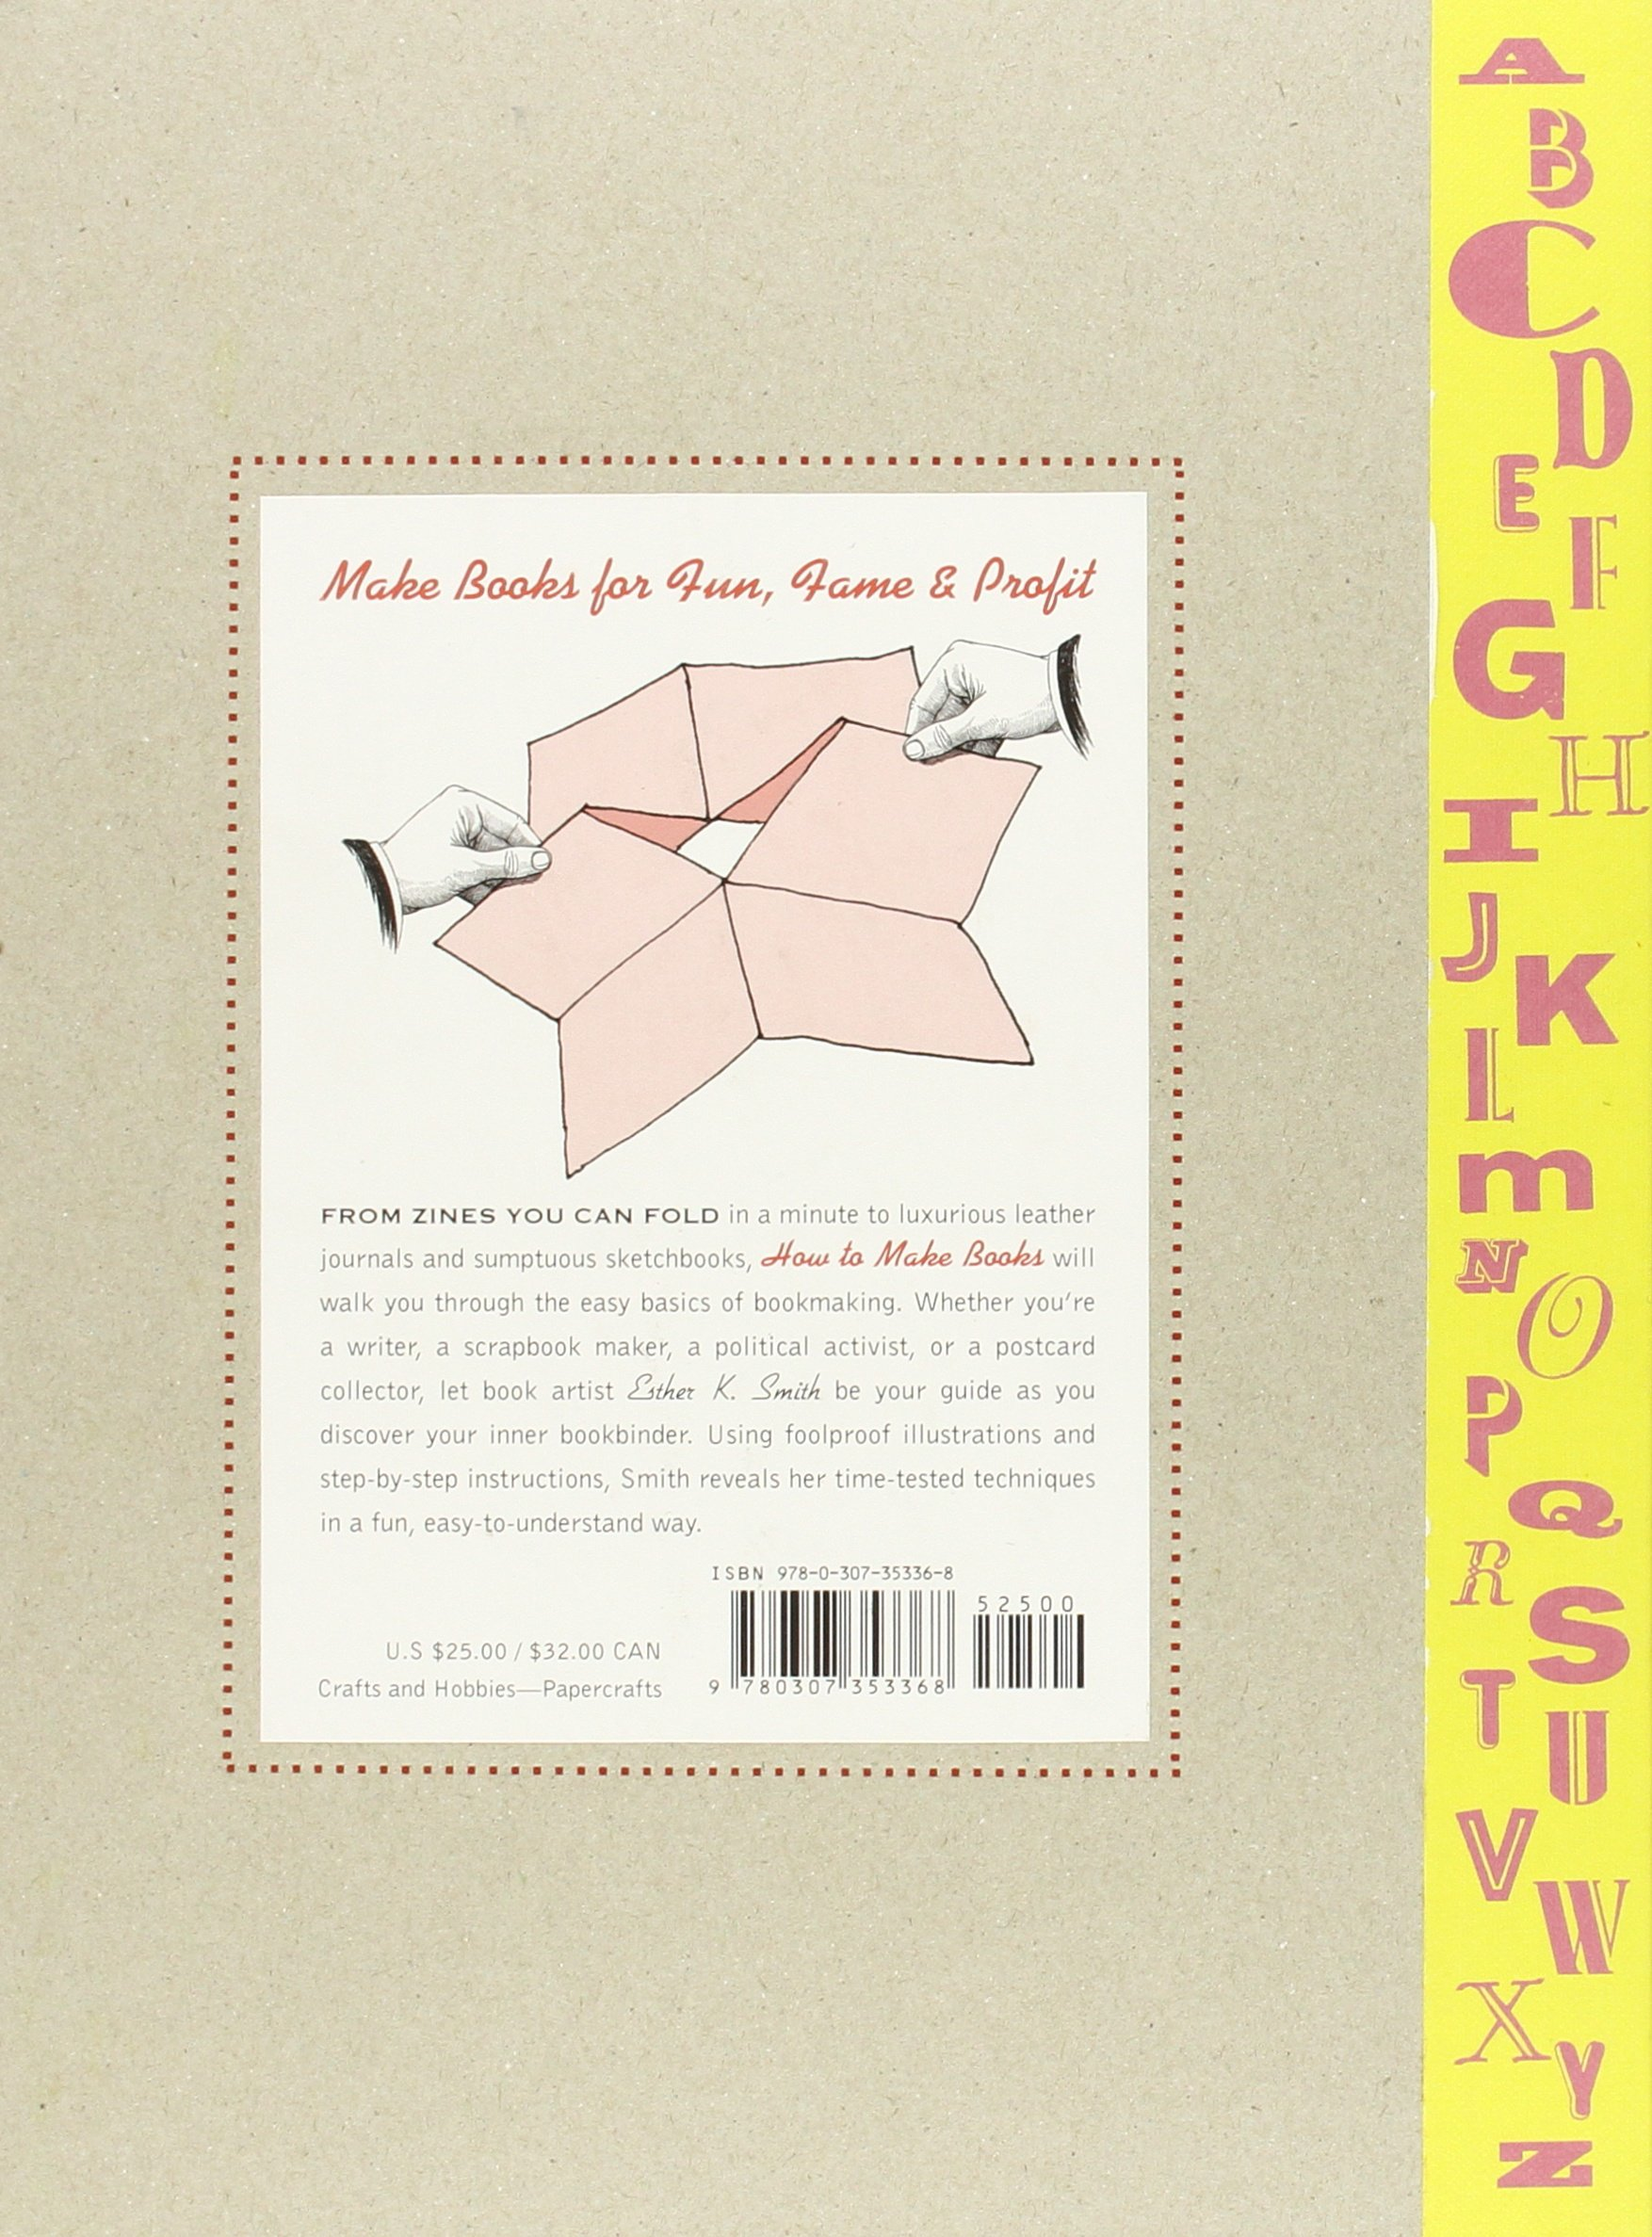 How to make scrapbook using illustration board - How To Make Books Fold Cut Stitch Your Way To A One Of A Kind Book Esther K Smith 9780307353368 Amazon Com Books